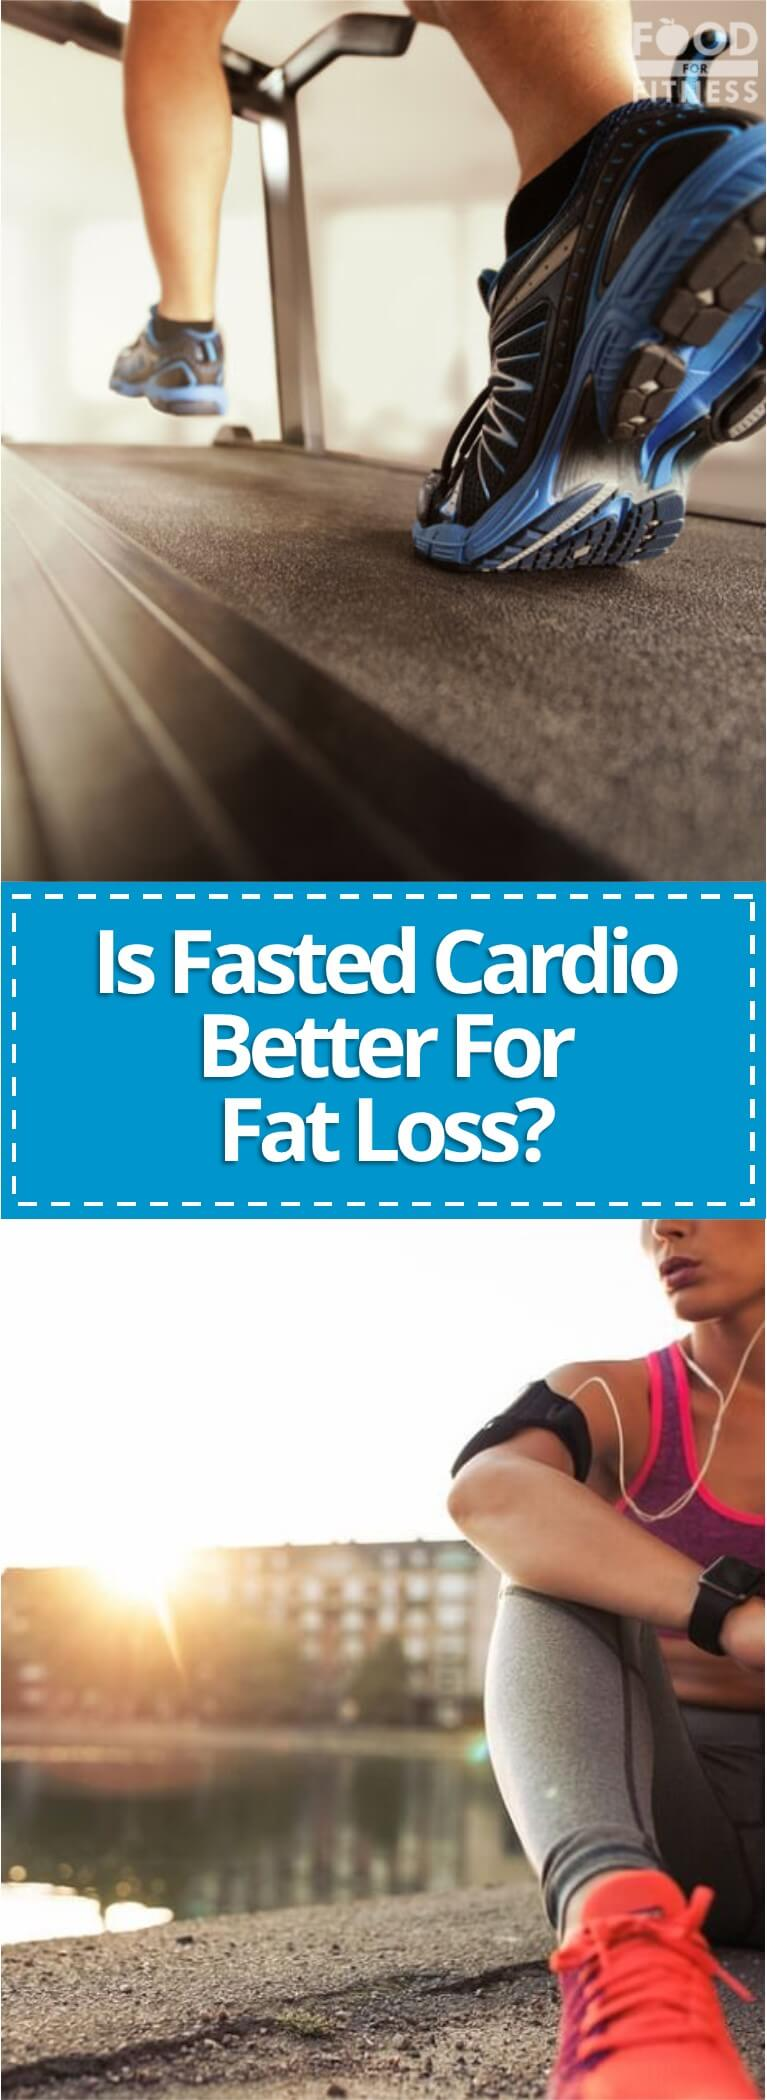 Fasted Cardio, Is Better For Fat Loss & Burning Fat?